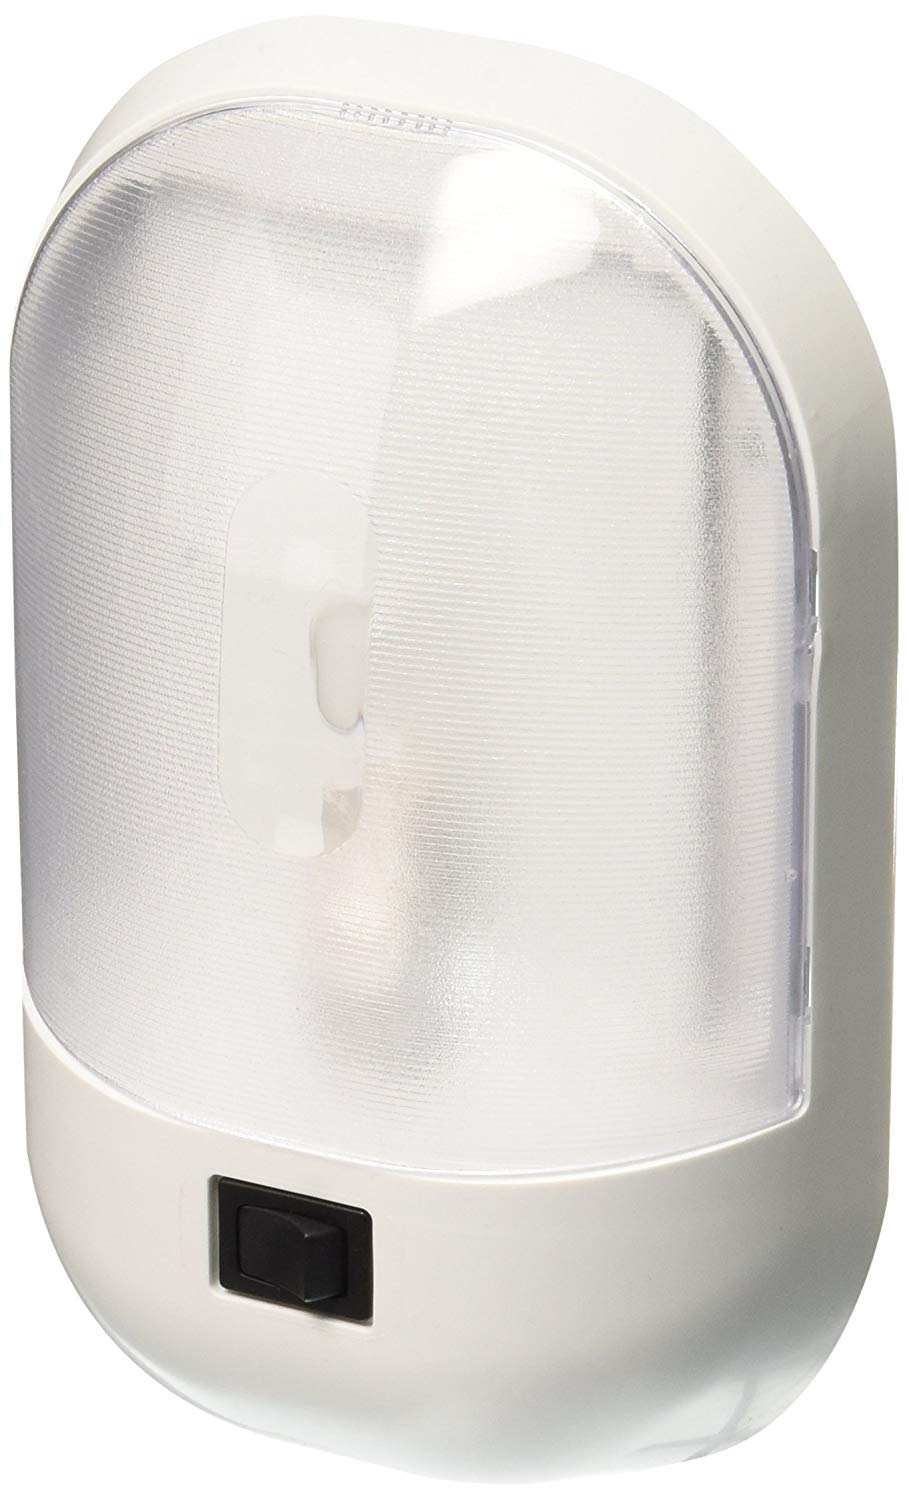 Fasteners Unlimited 001-901XPB White Dome Light with White Oval Lens